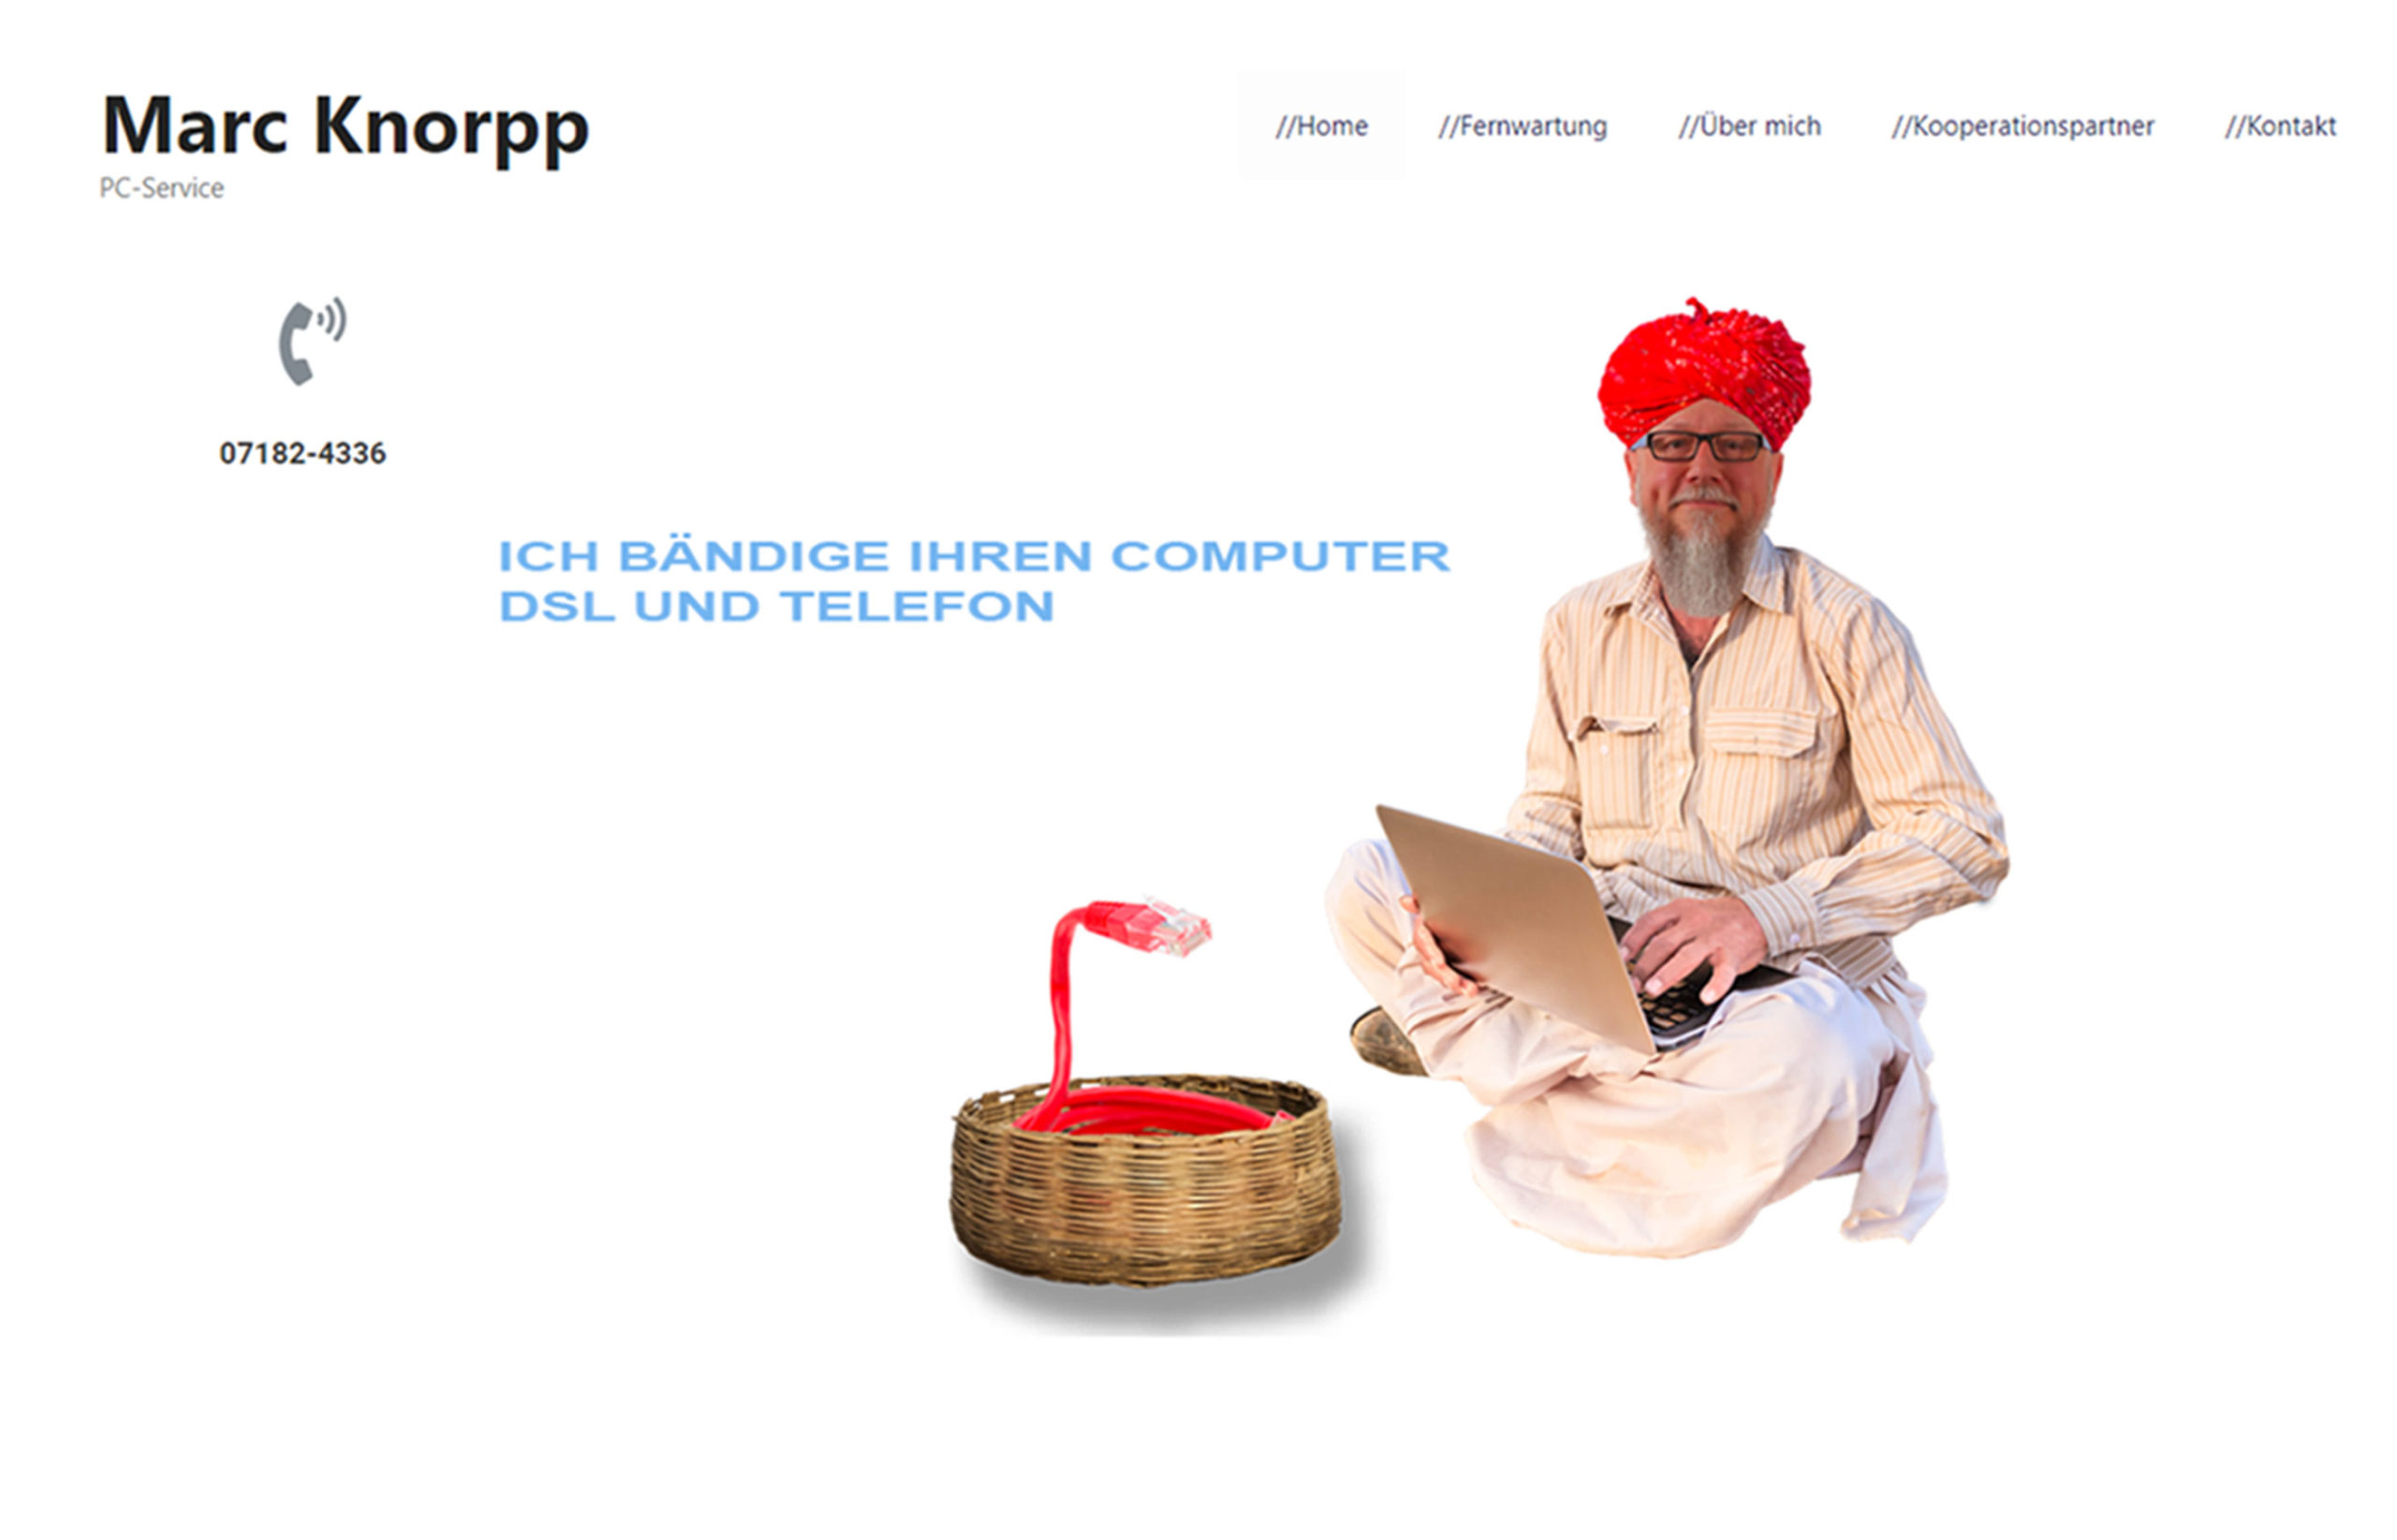 Marc Knorpp PC-Service